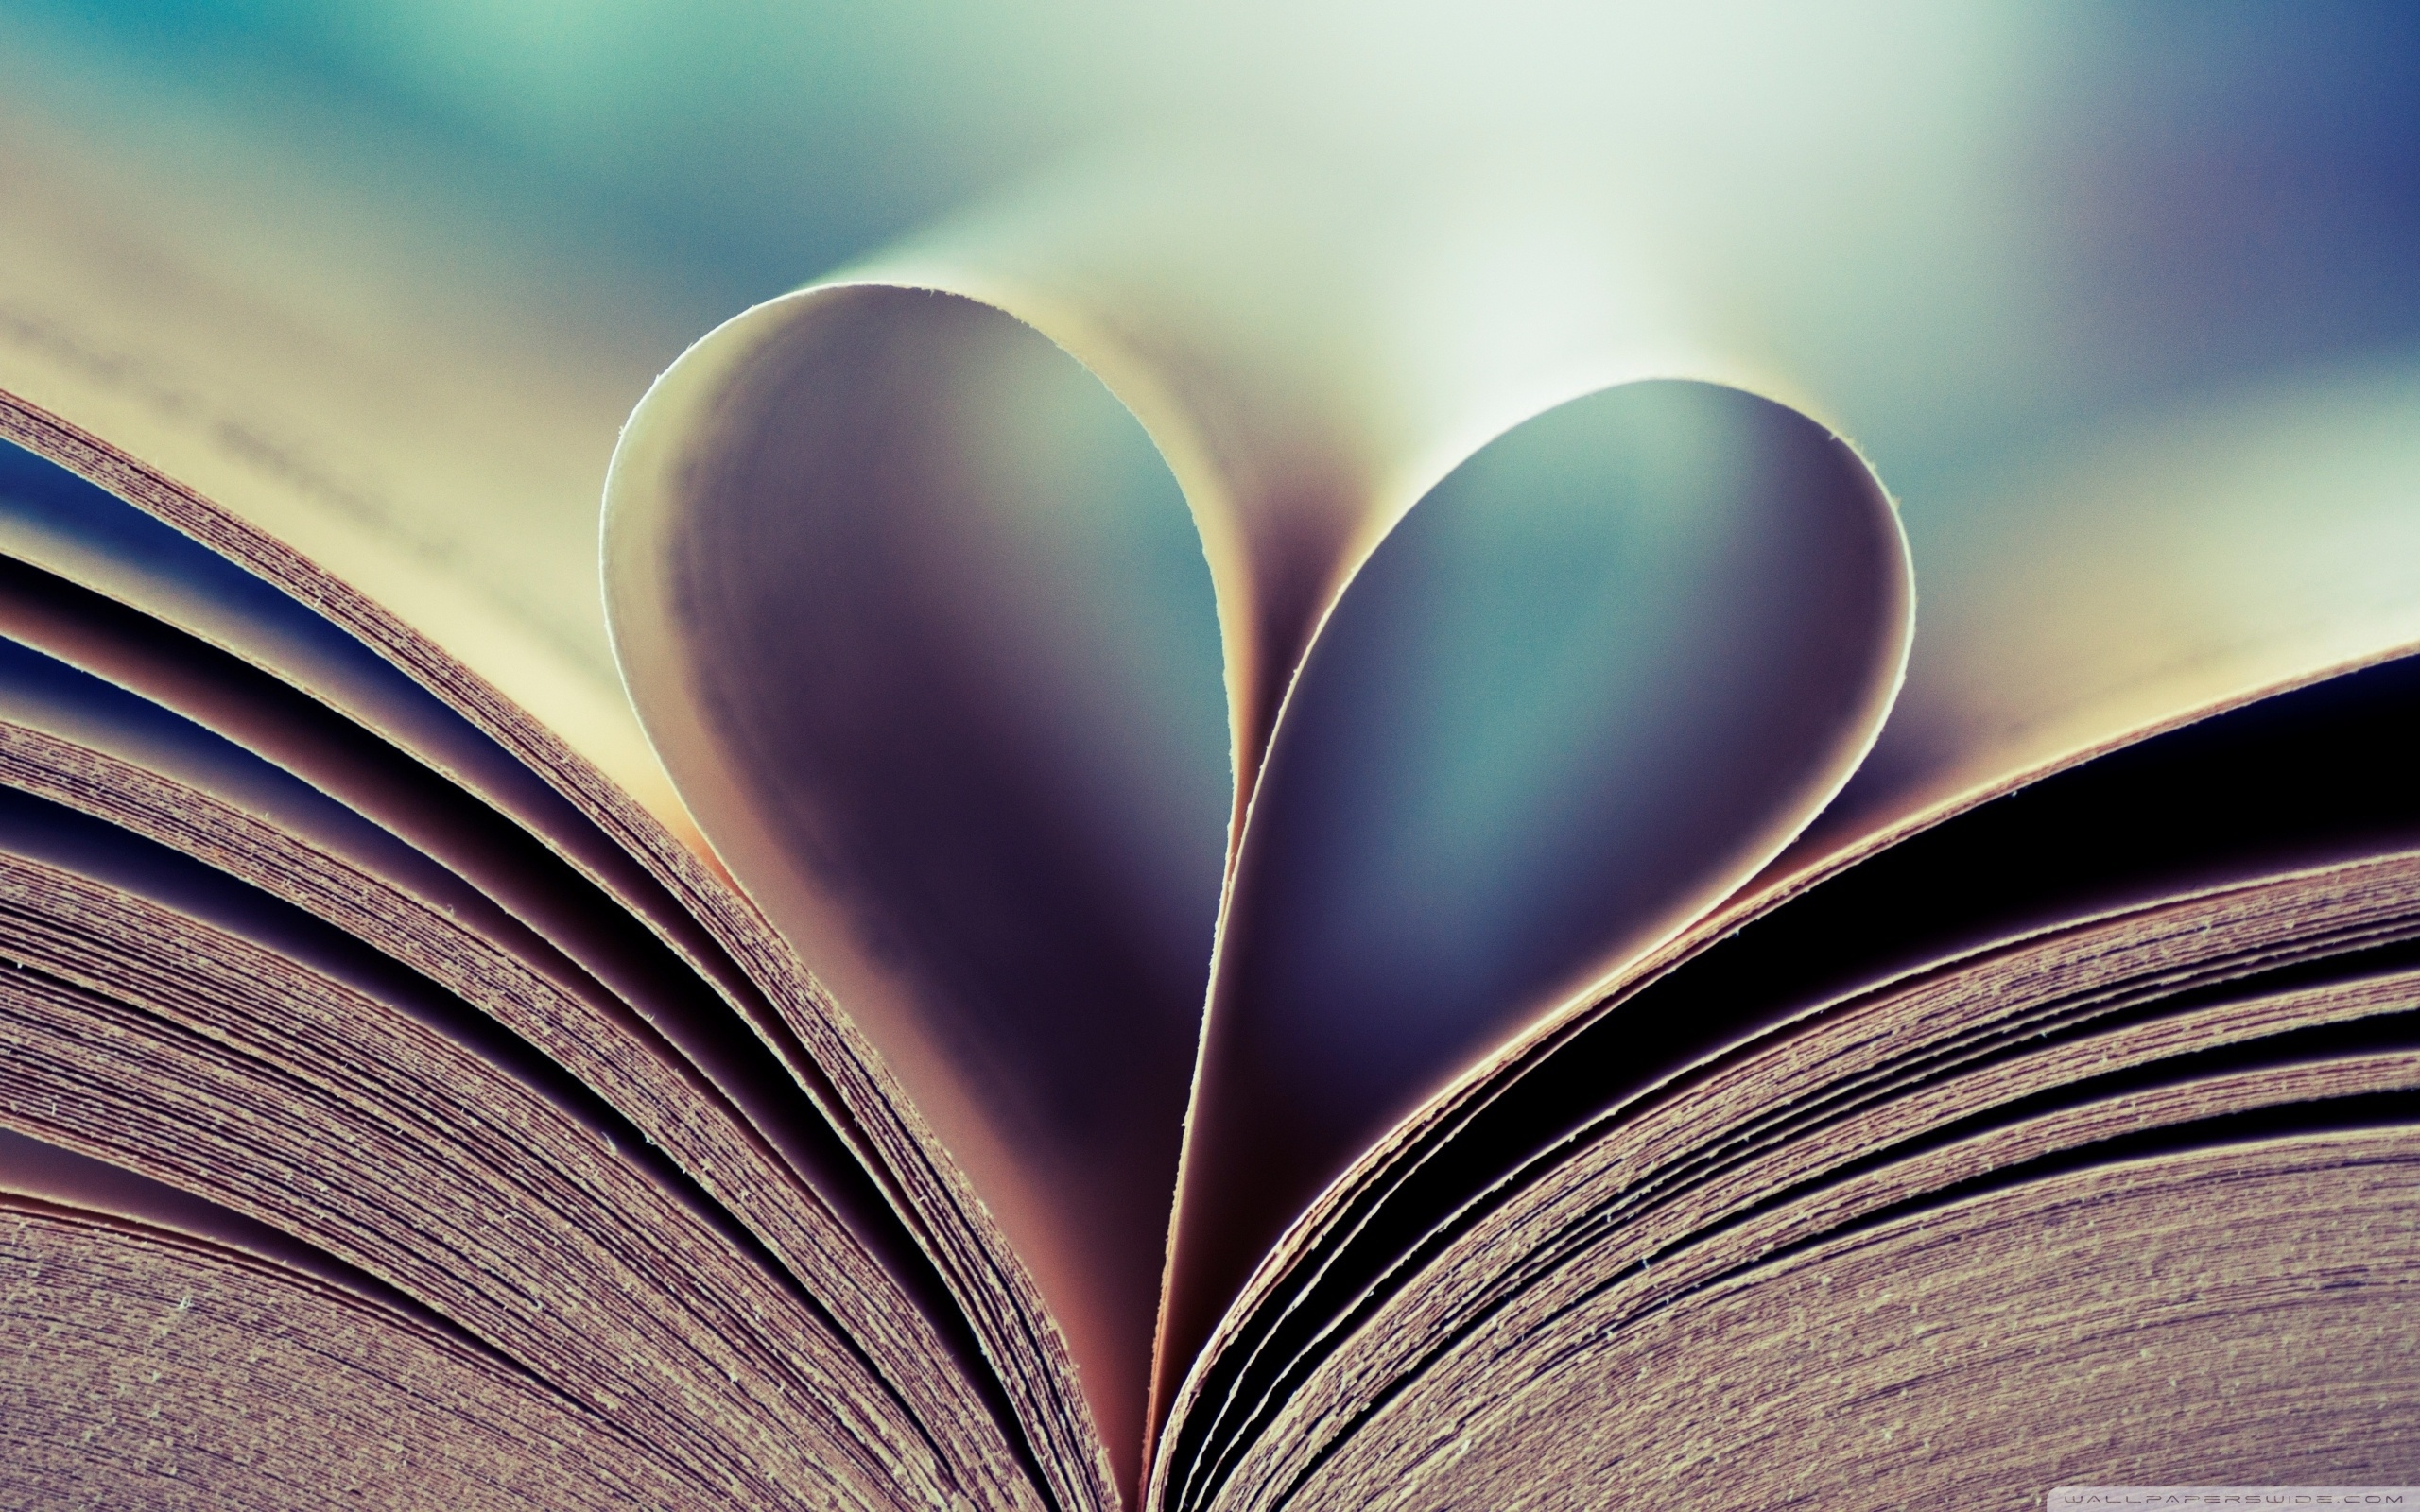 Book Pages Heart Love